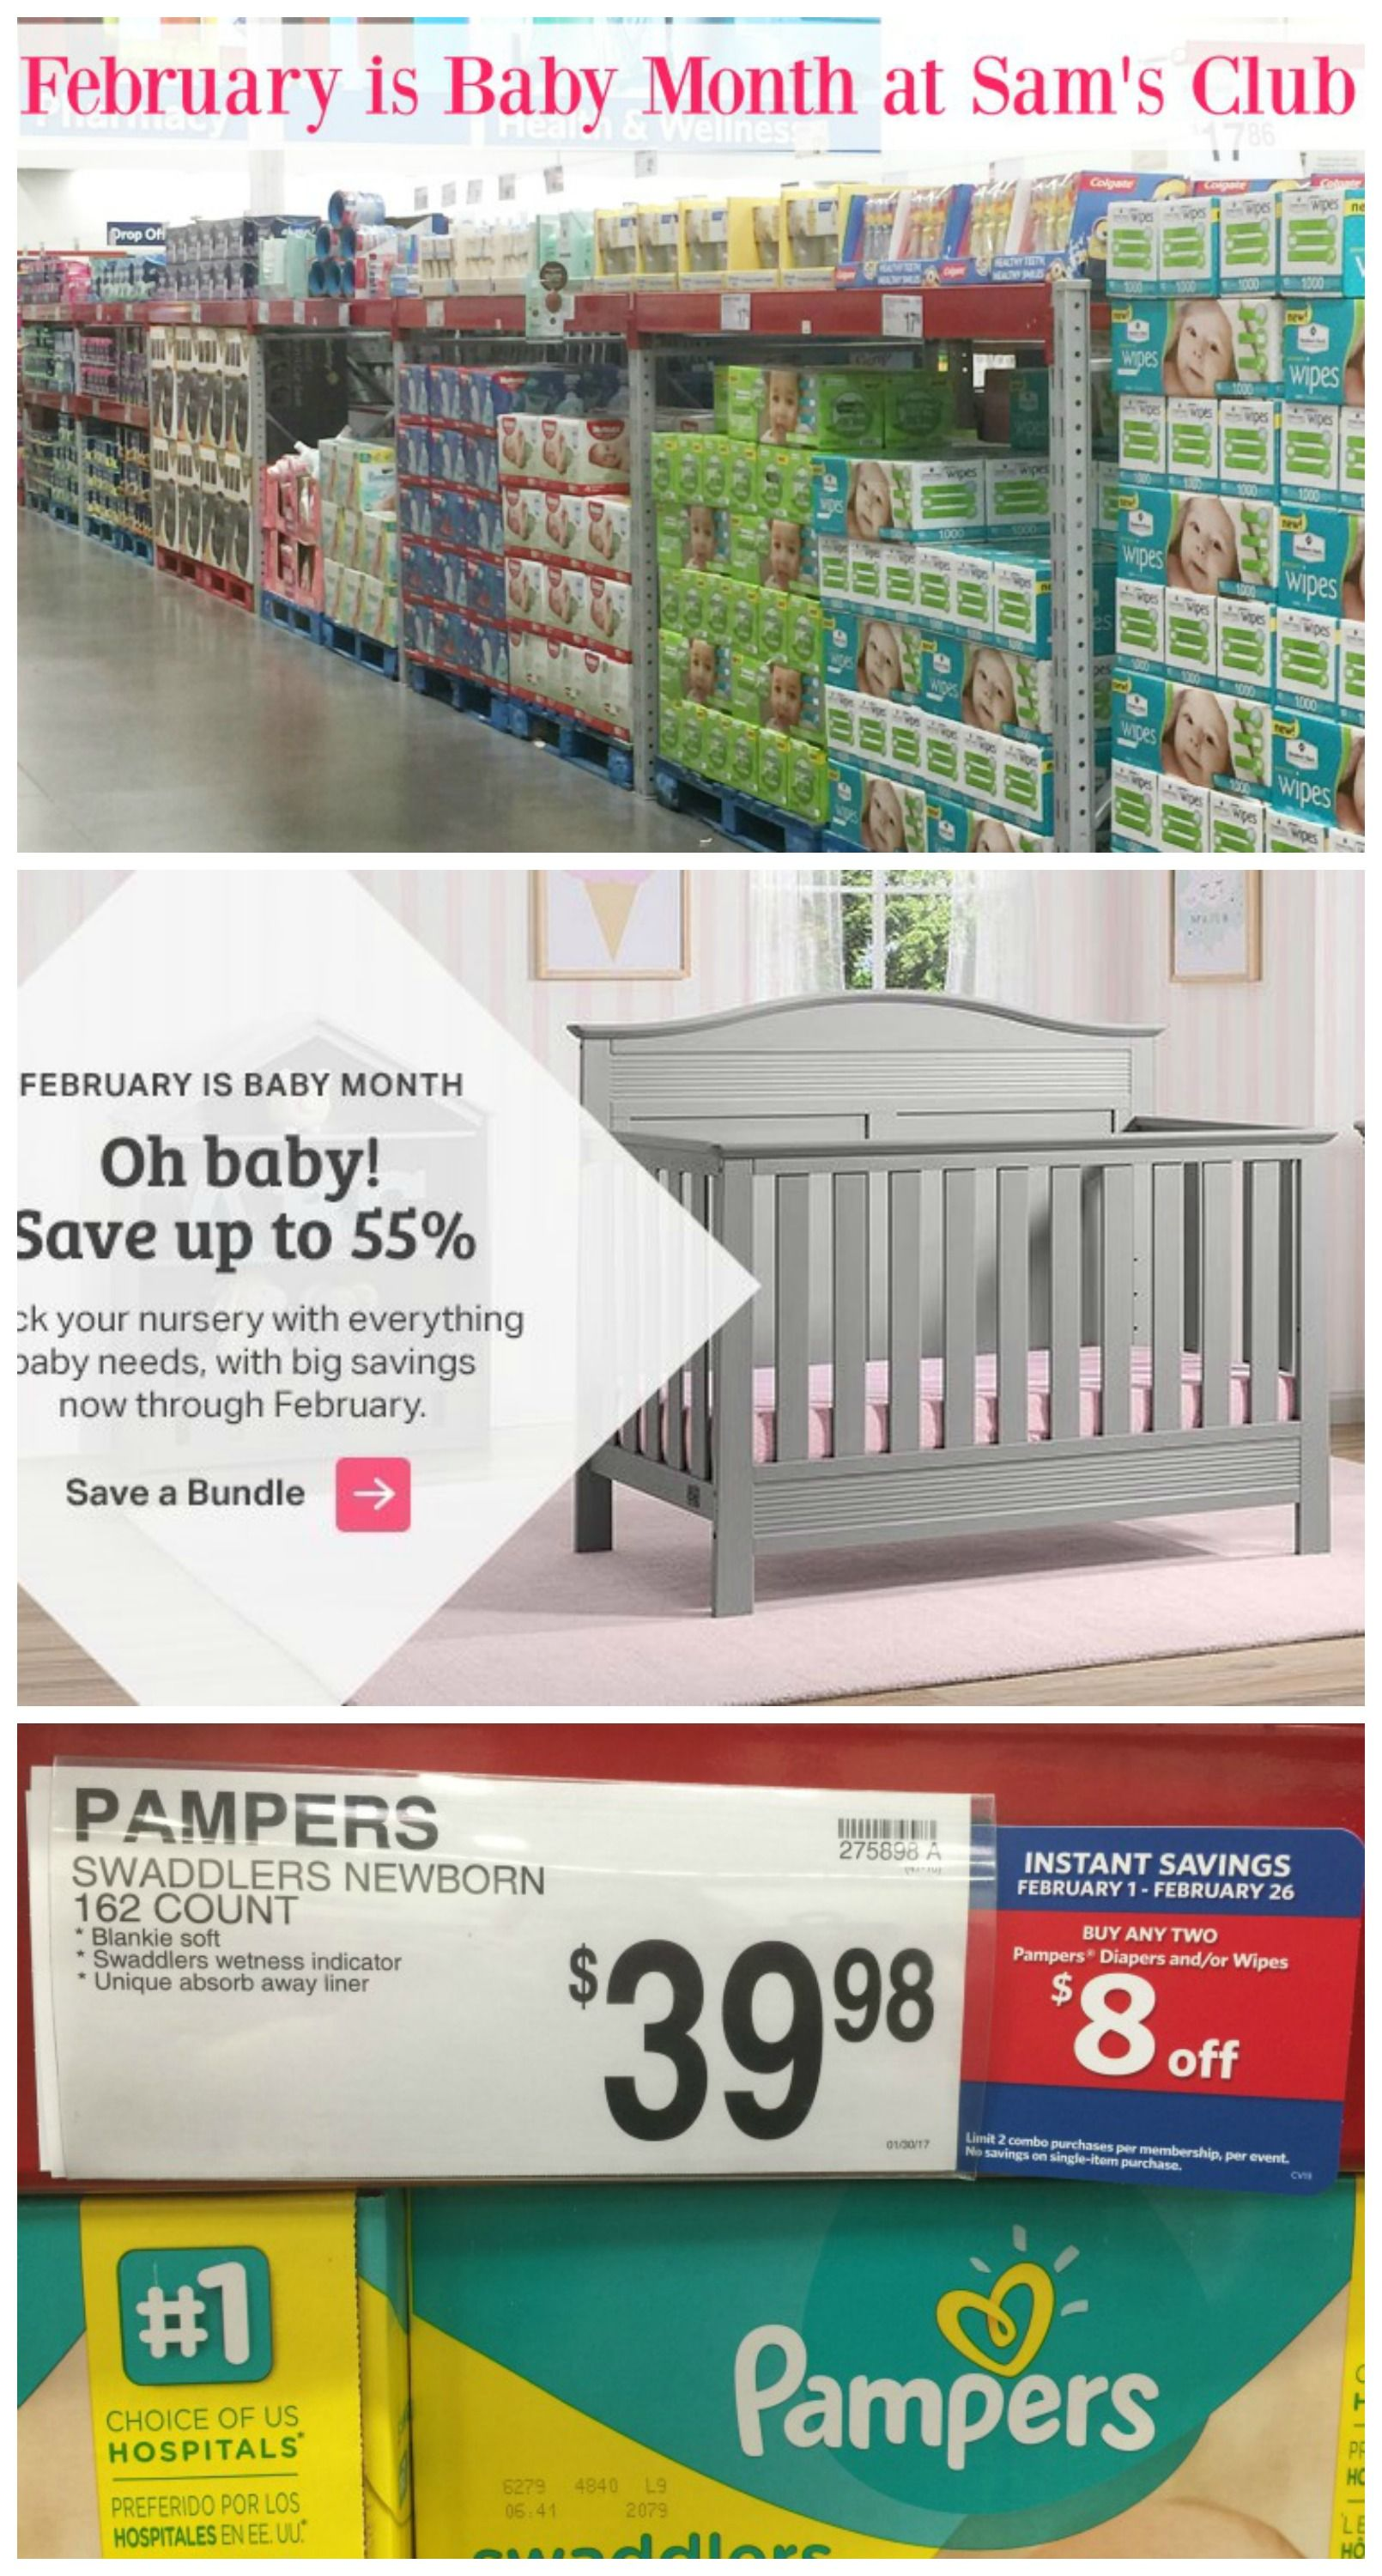 Looking for some baby deals? February is Baby Month at Sam's Club! Come see all the great savings! #ad